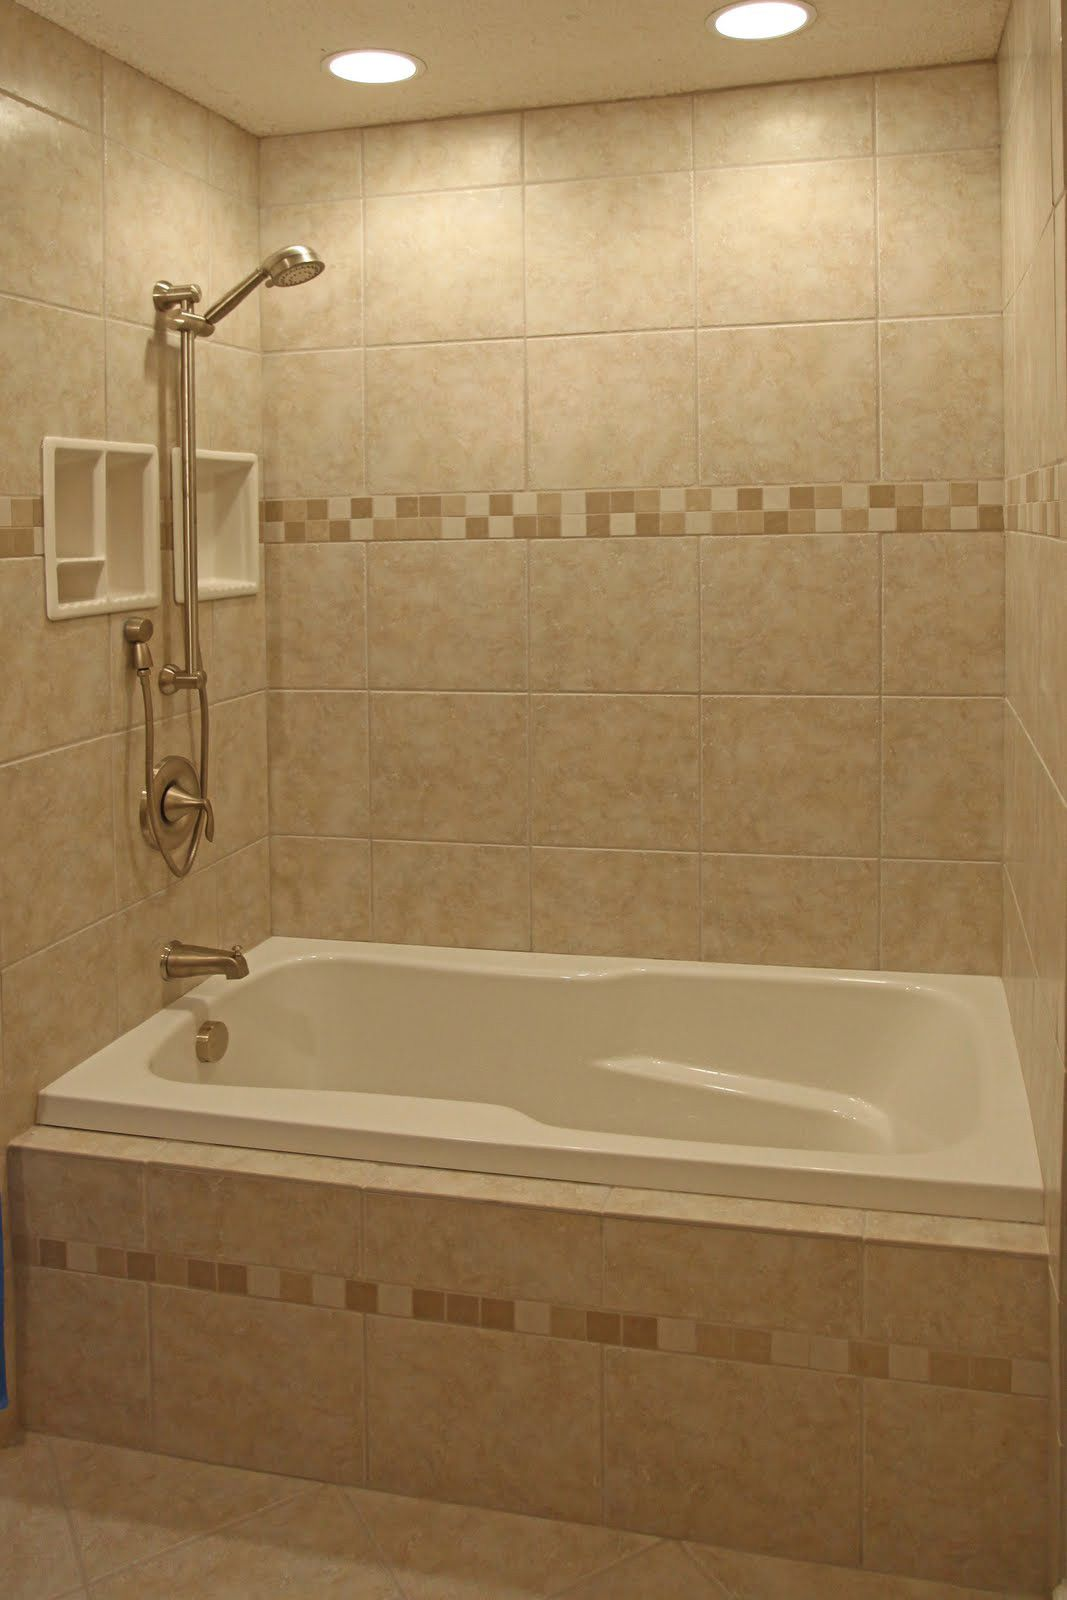 Tile Stripe Could Match Shower Floor Tile Bathroom Redux